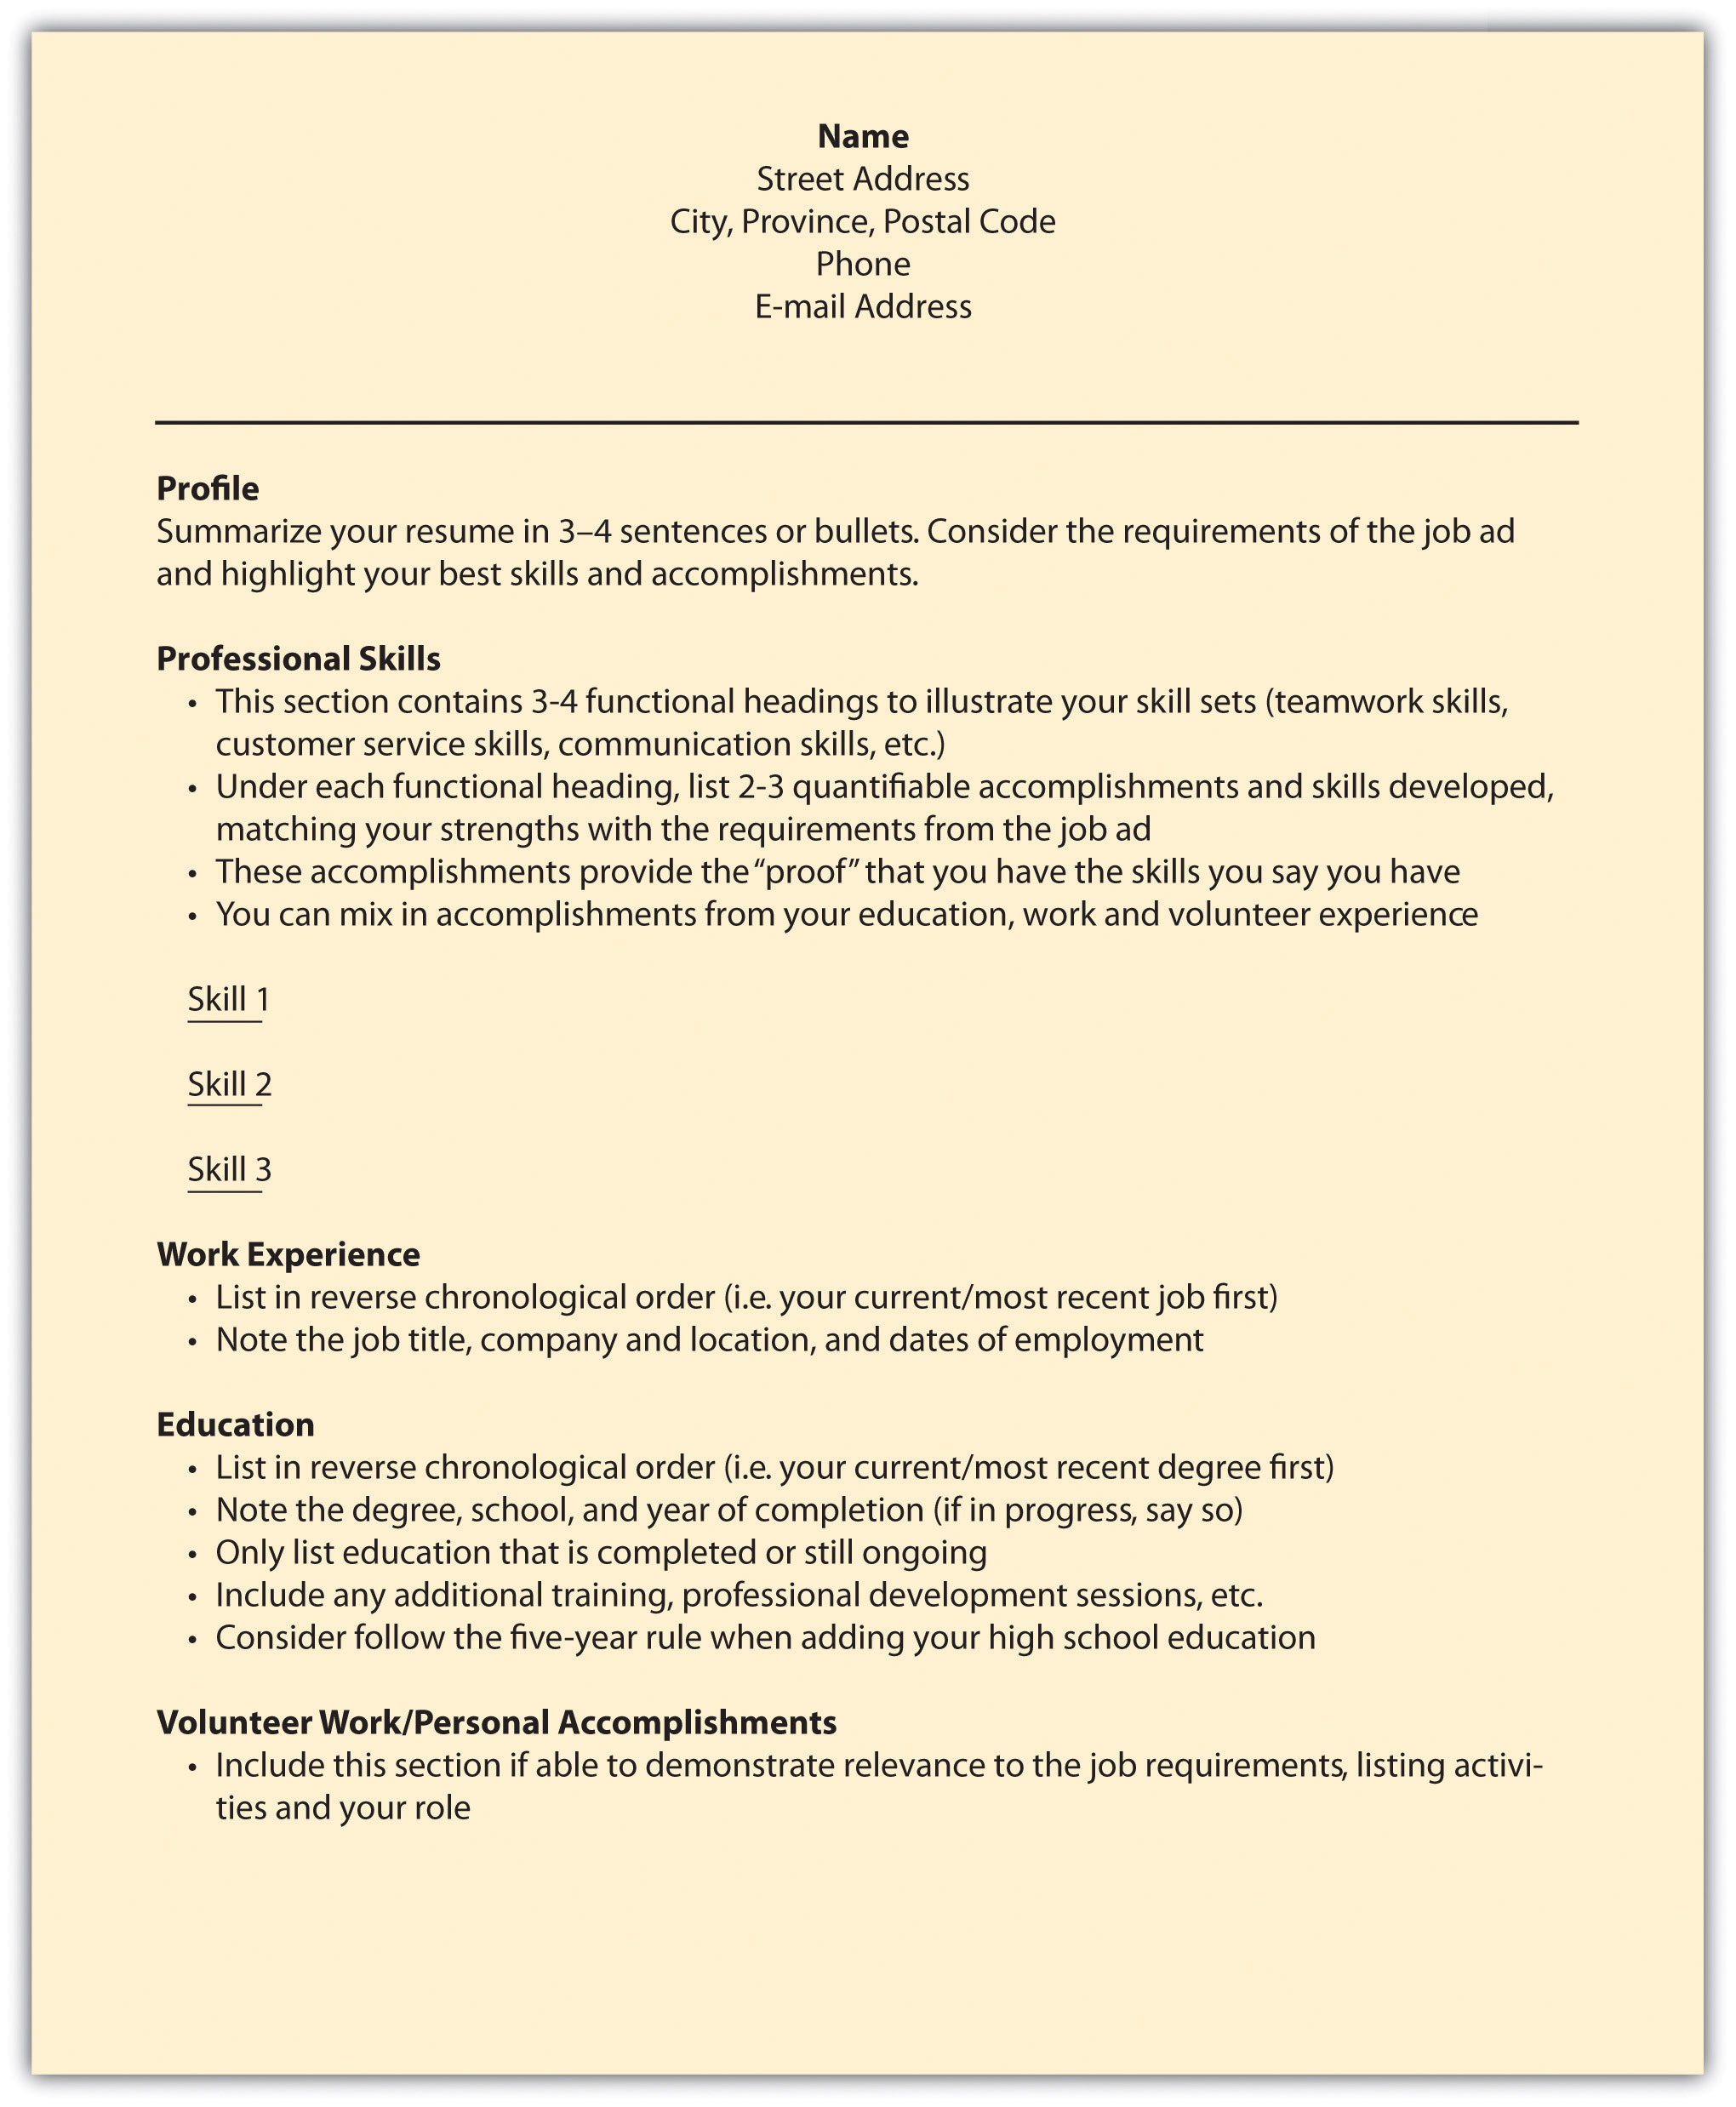 Communication skills section of resume